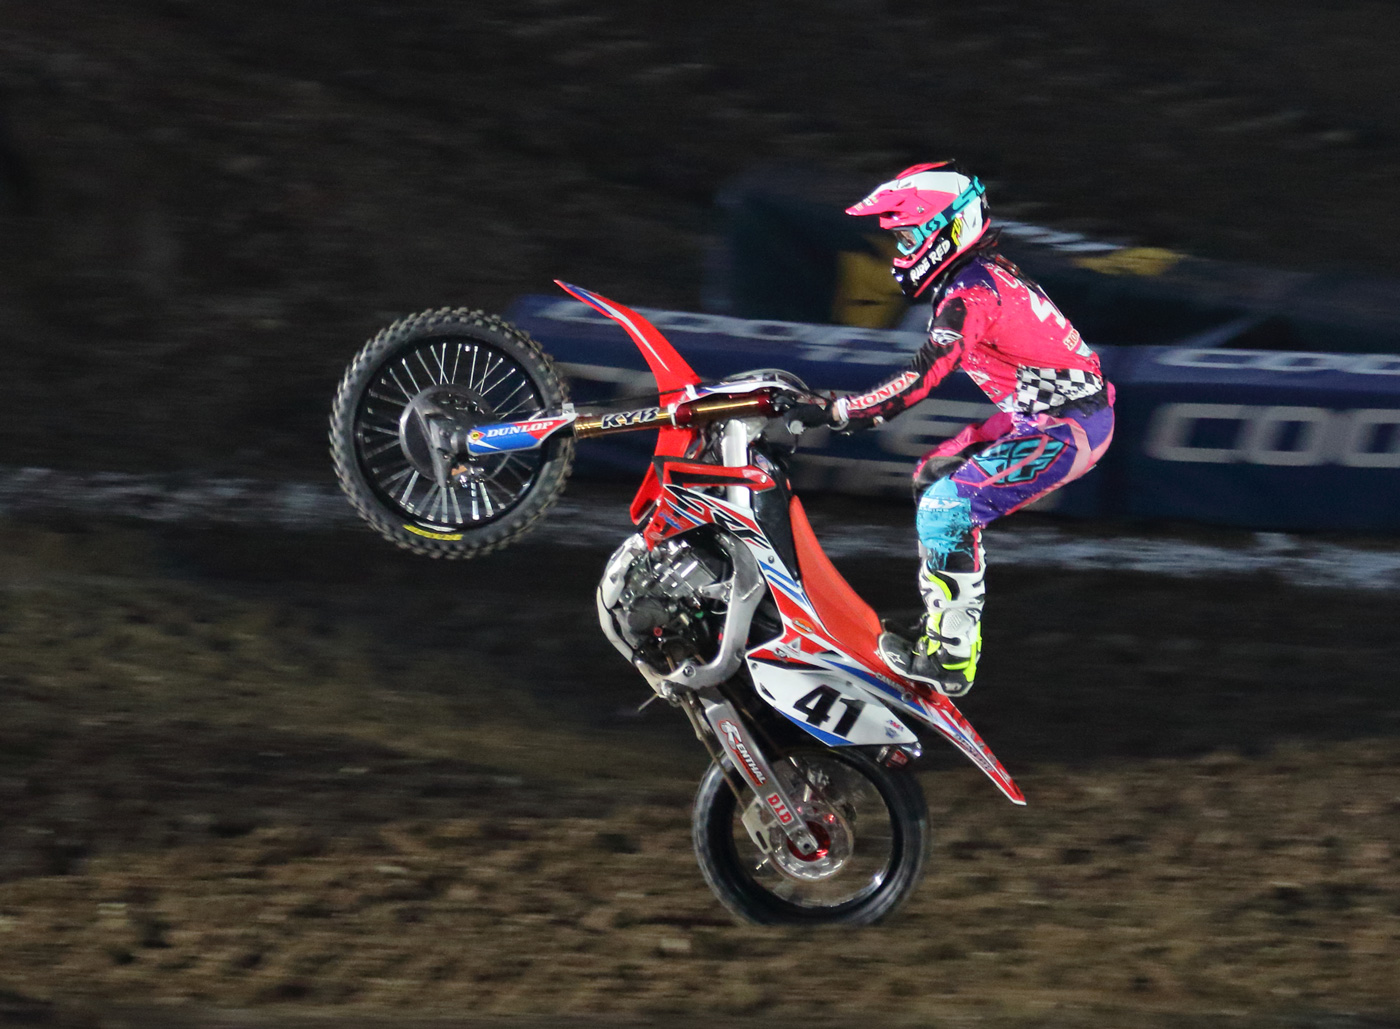 2016 Monster Energy Supercross Indianapolice その2_d0091546_2485433.jpg